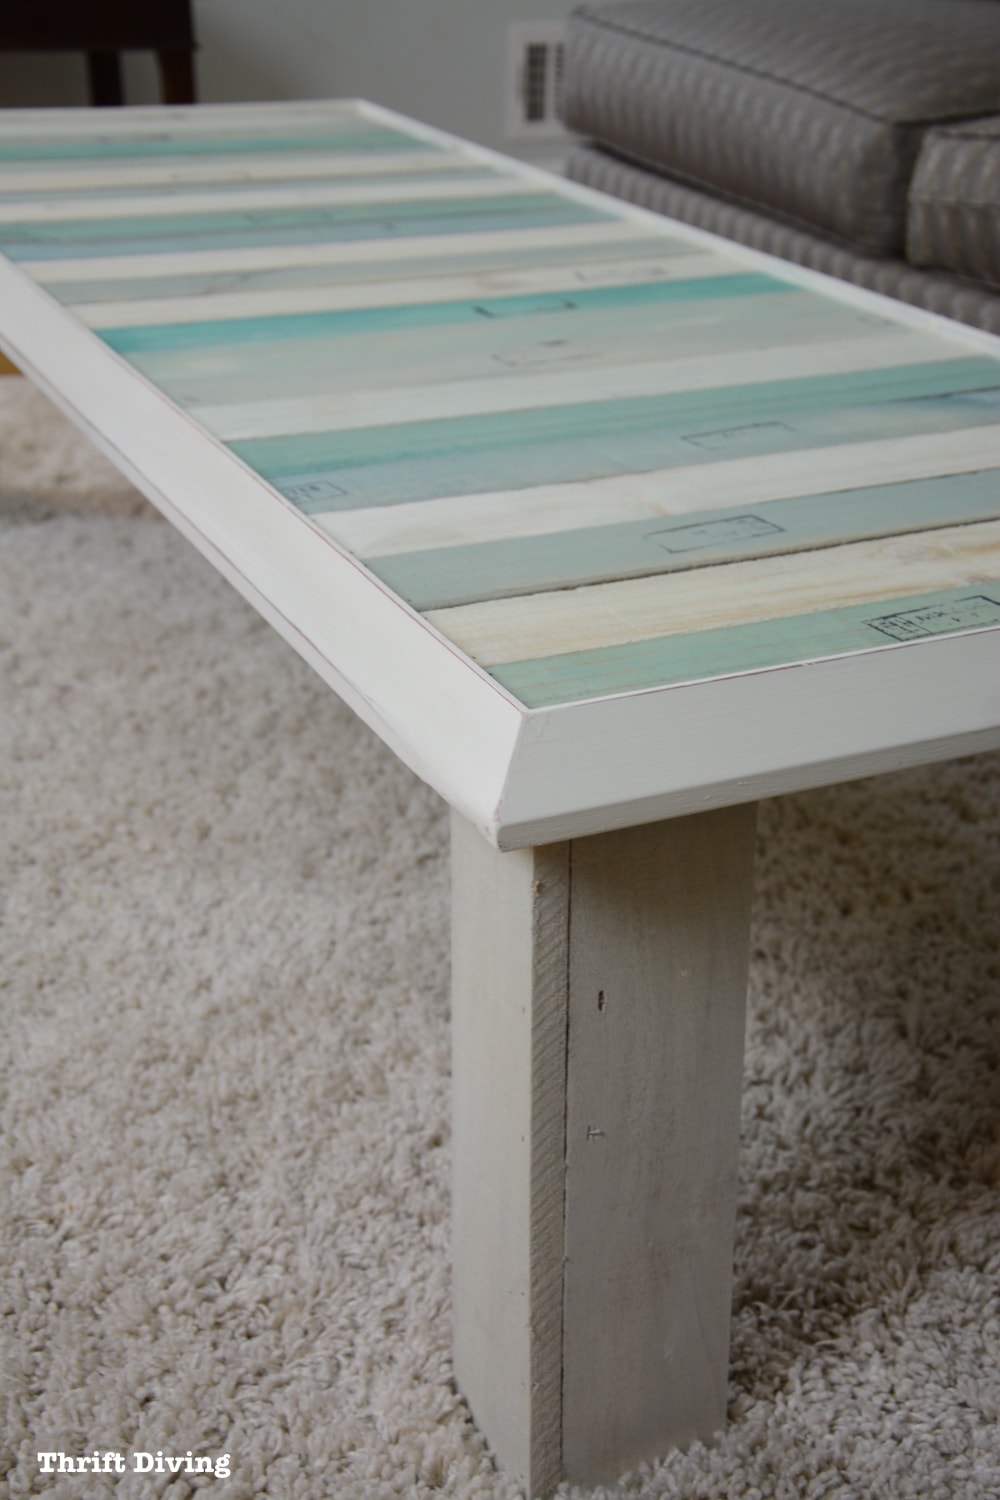 Diy Table With Pallets Upcycle A Picture Frame And Pallets Into A Diy Coffee Table